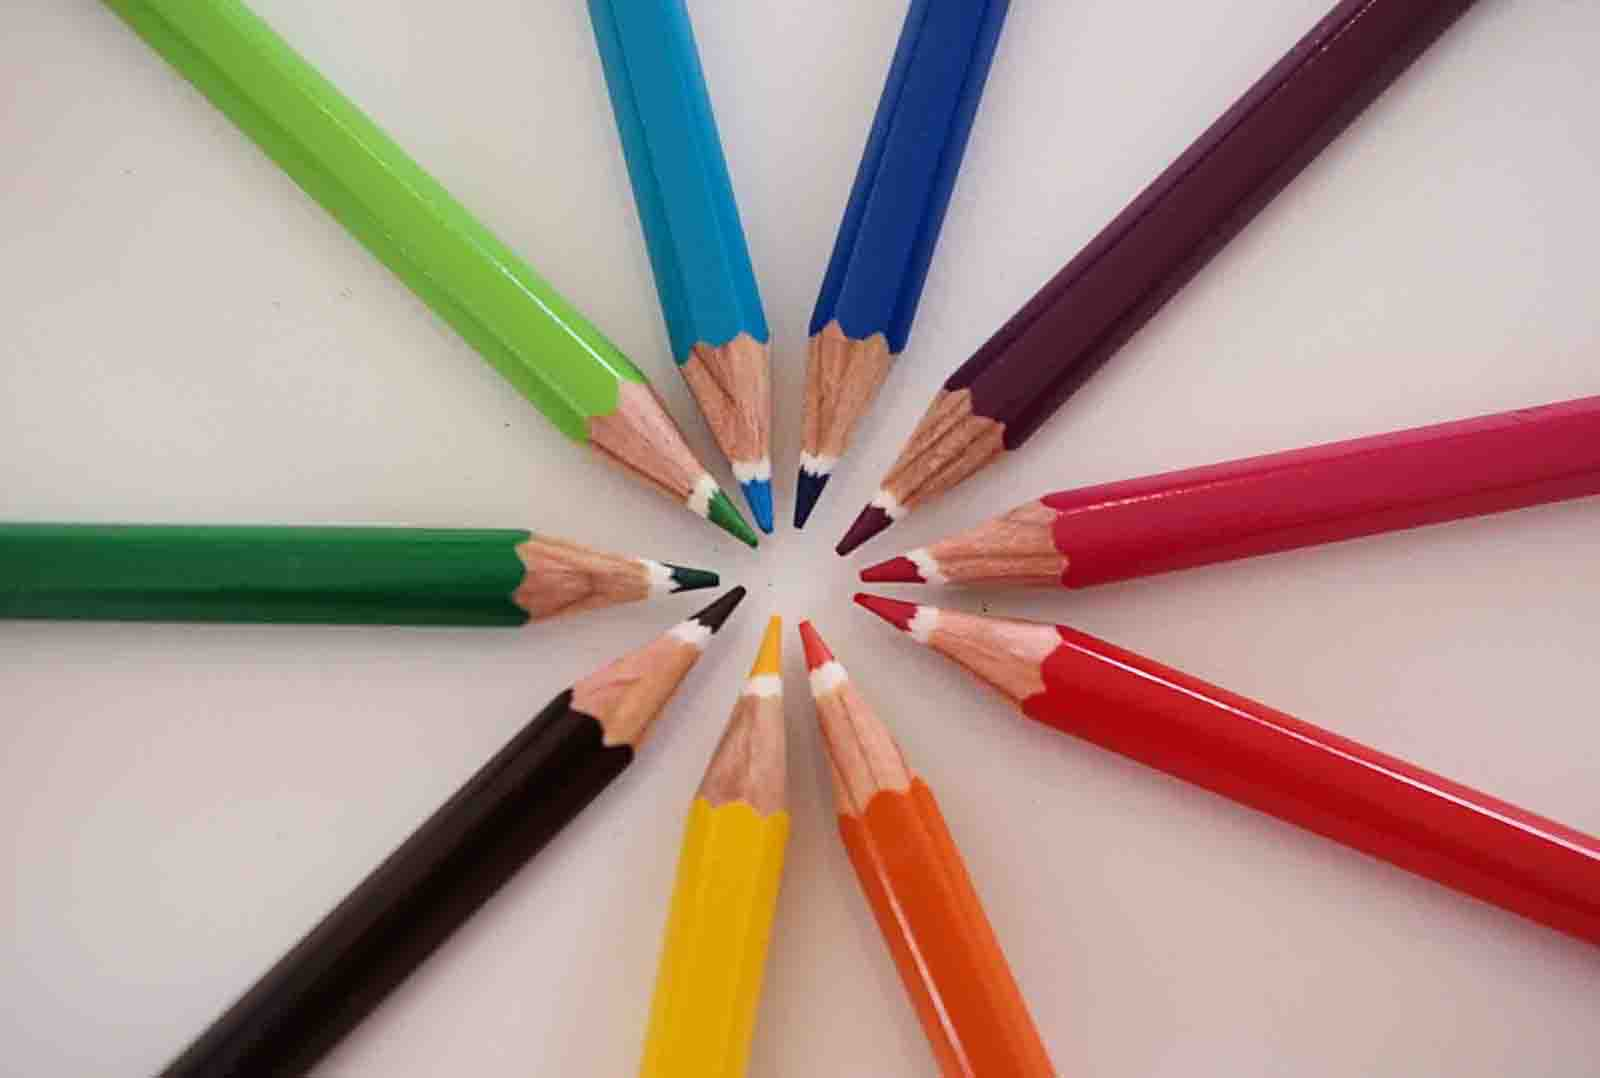 Making Time to Craft Colored Pencils